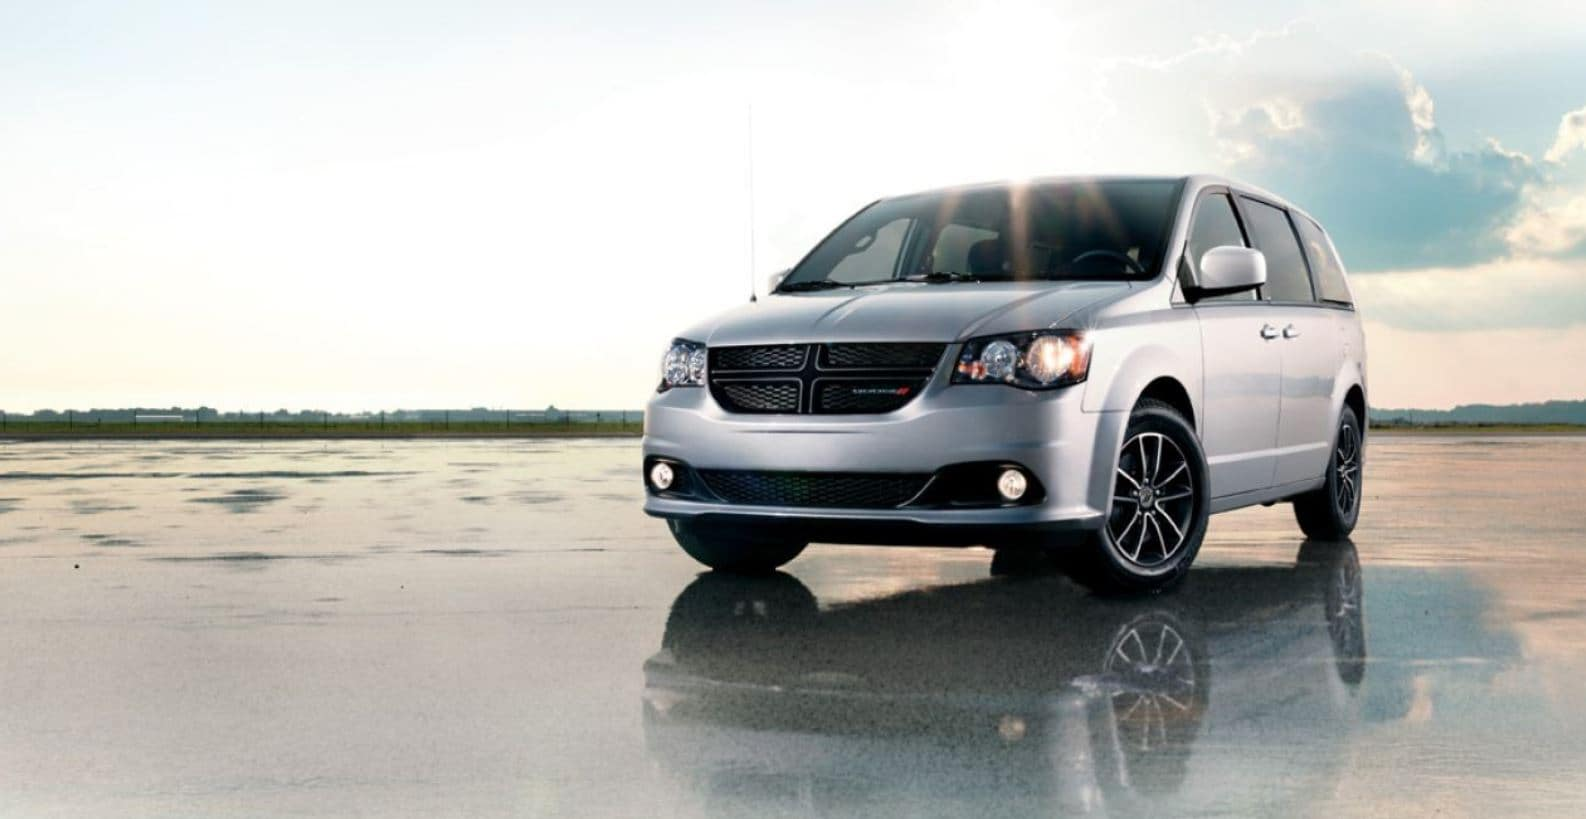 2019 dodge grand caravan with headlights on in sunny day on rainy pavement and reflection of vehicle showing in pavement